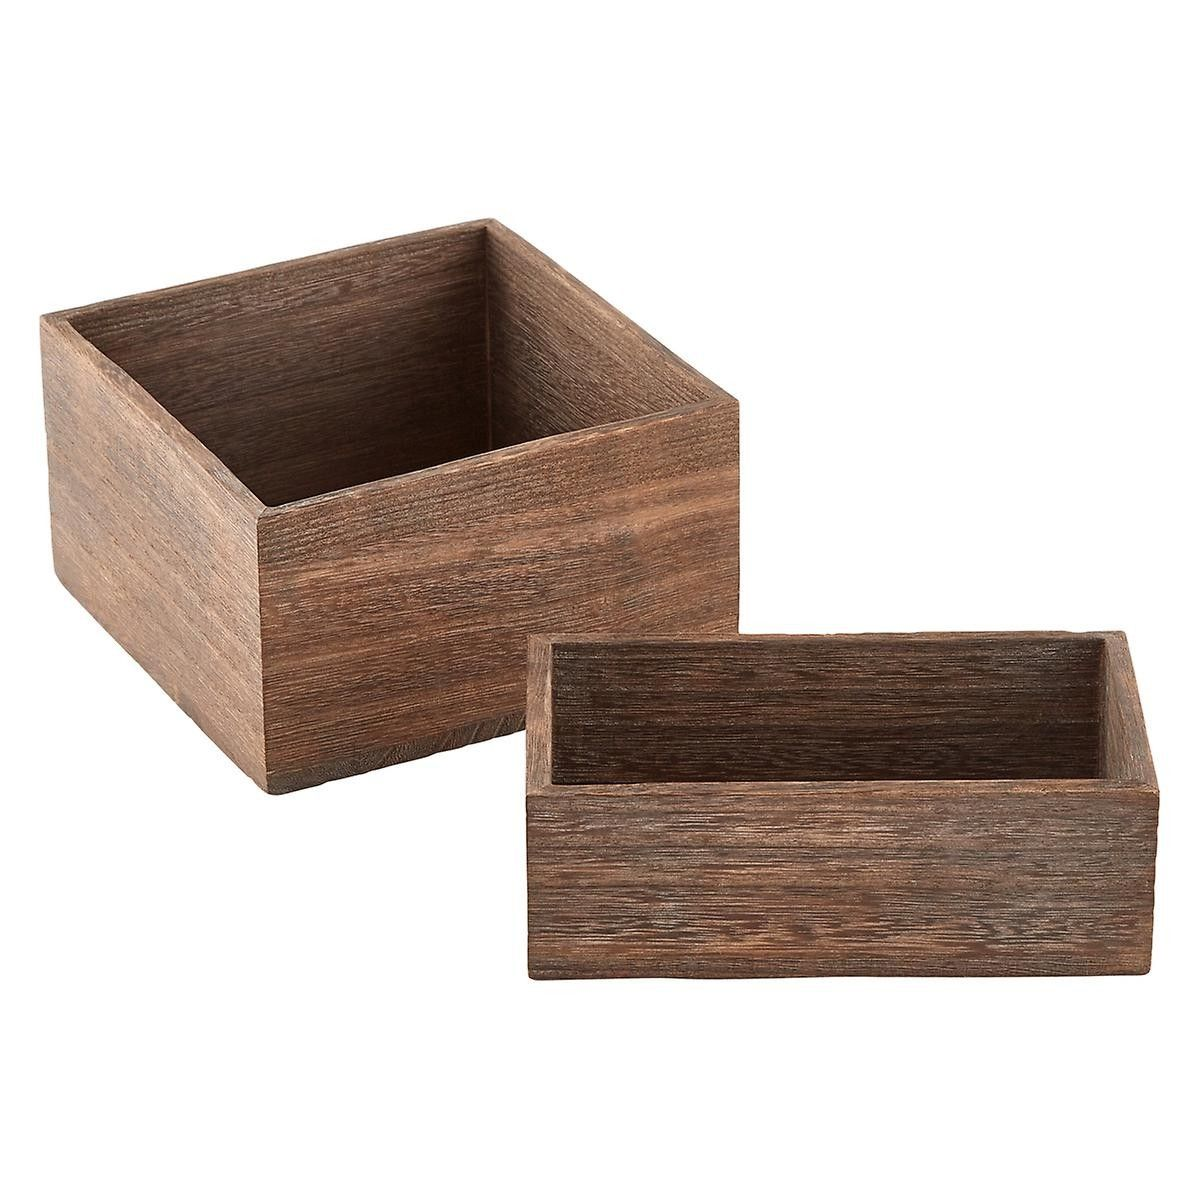 11+ Wooden craft boxes with lids ideas